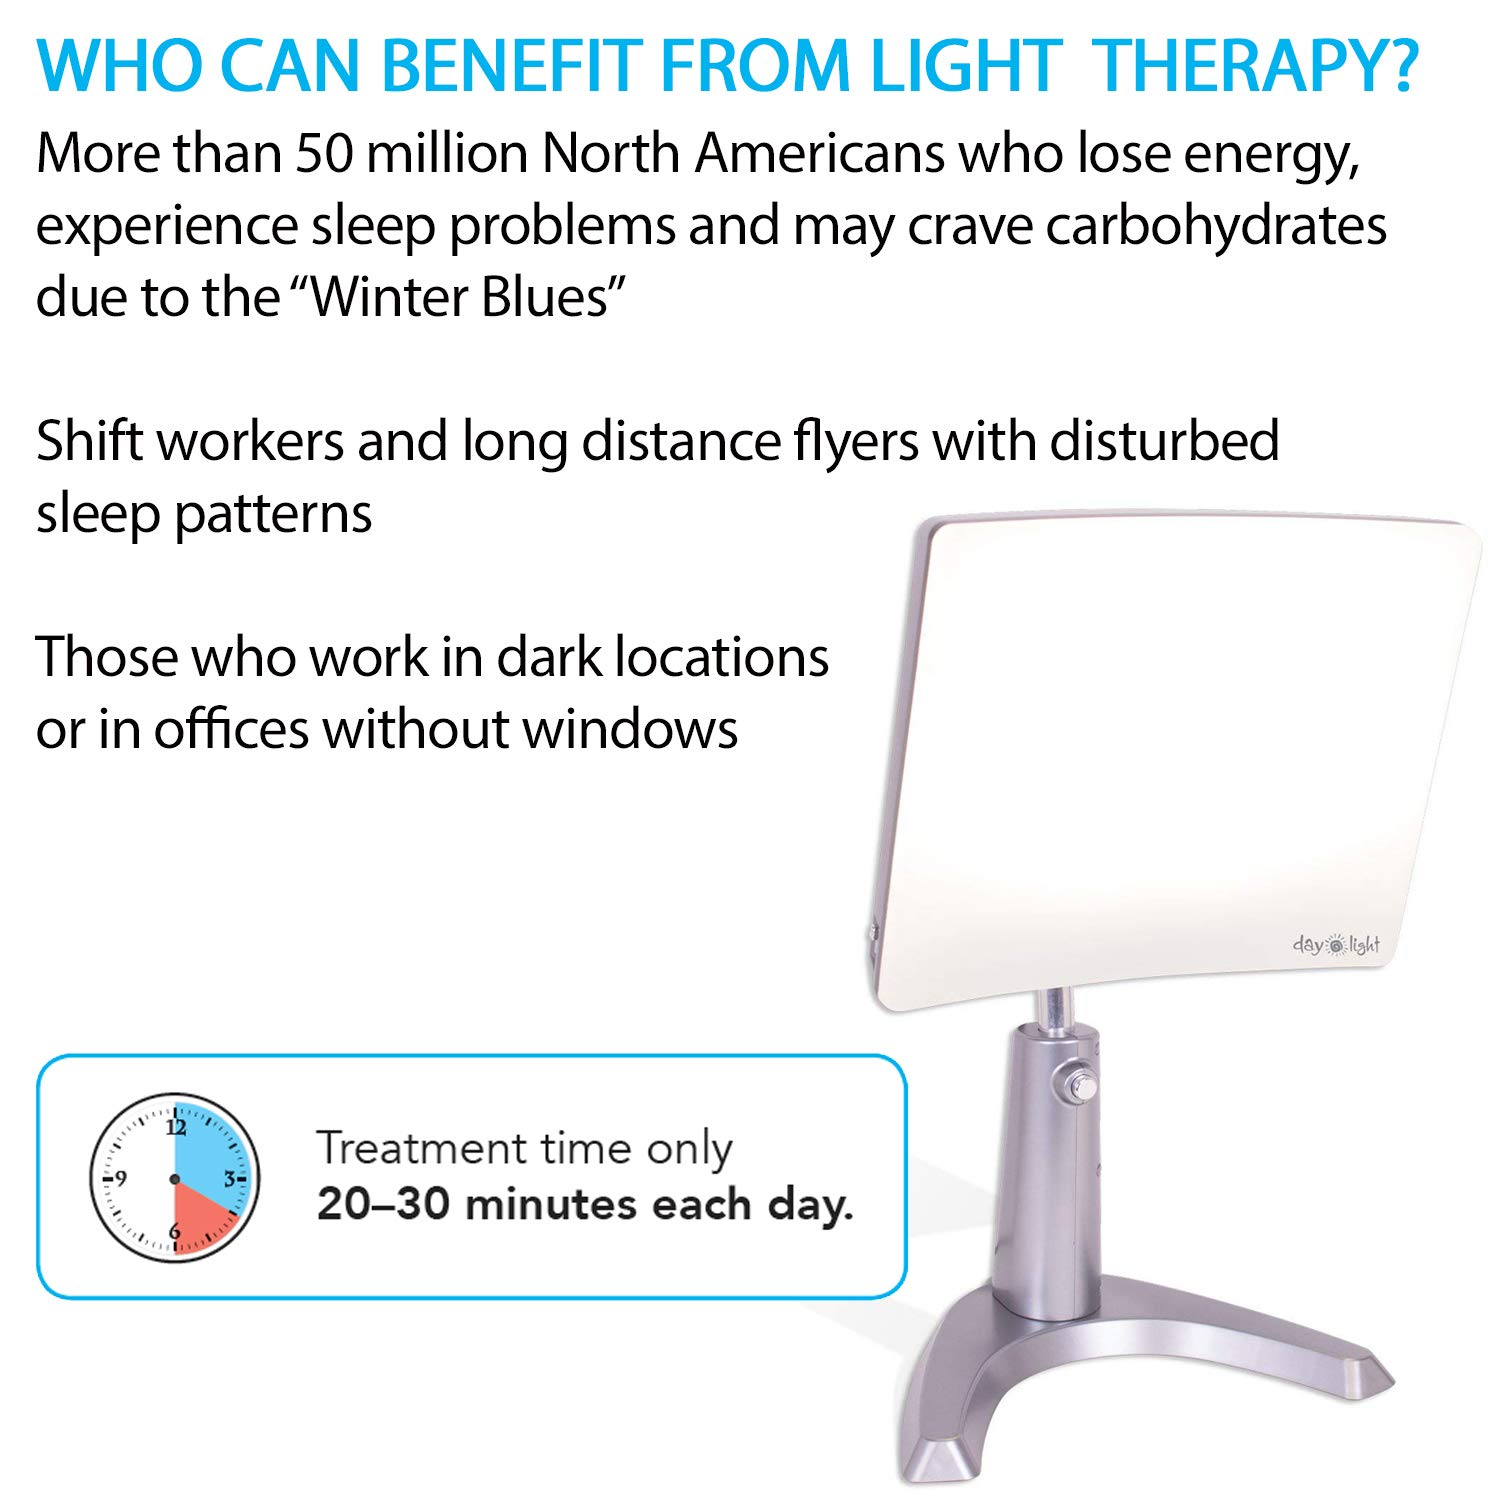 Carex Day-Light Classic Plus Bright Light Therapy Lamp - 10,000 LUX - Sun Lamp Mood Light by Carex Health Brands (Image #2)